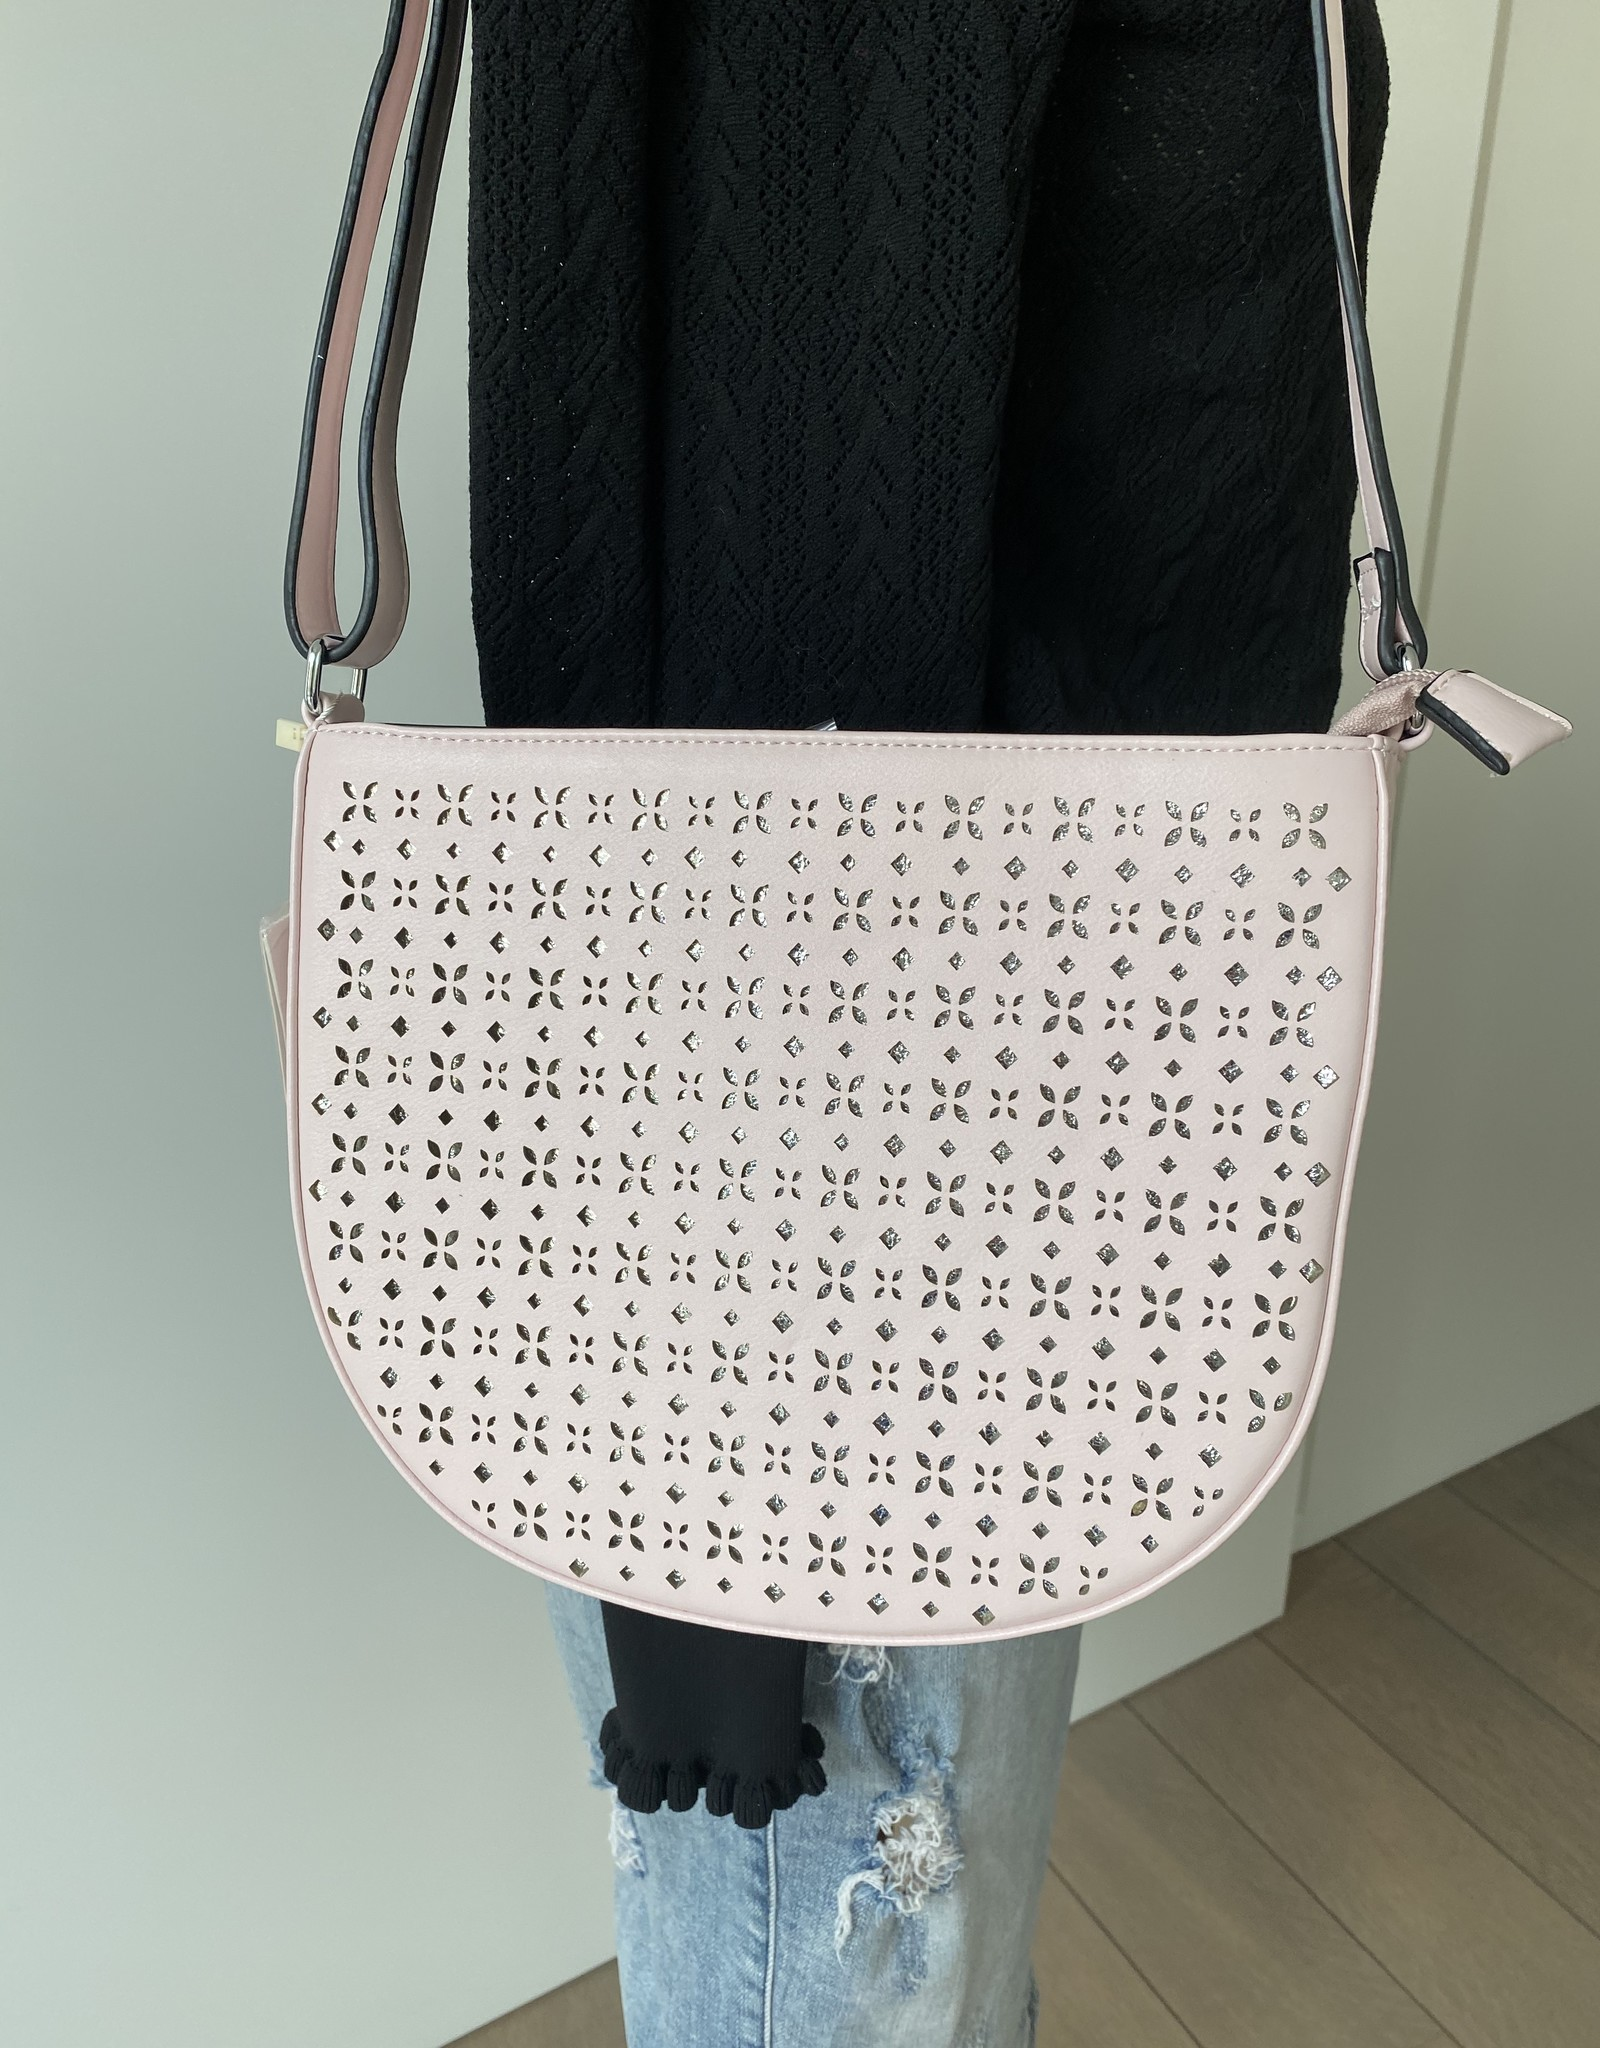 Bag in artificial leather with flowerdesign